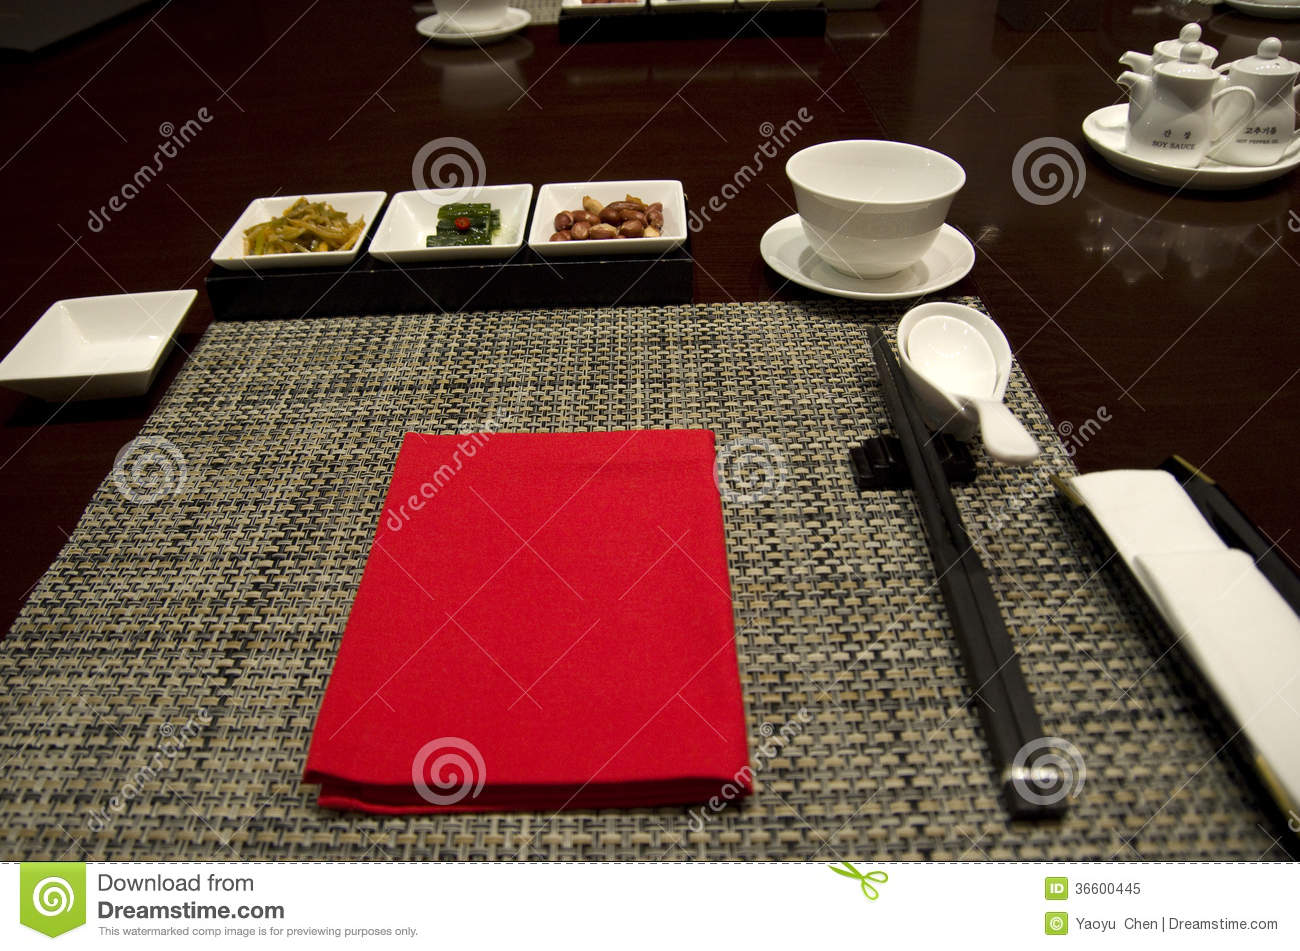 Chinese Restaurant Dining Table Setting Stock Image